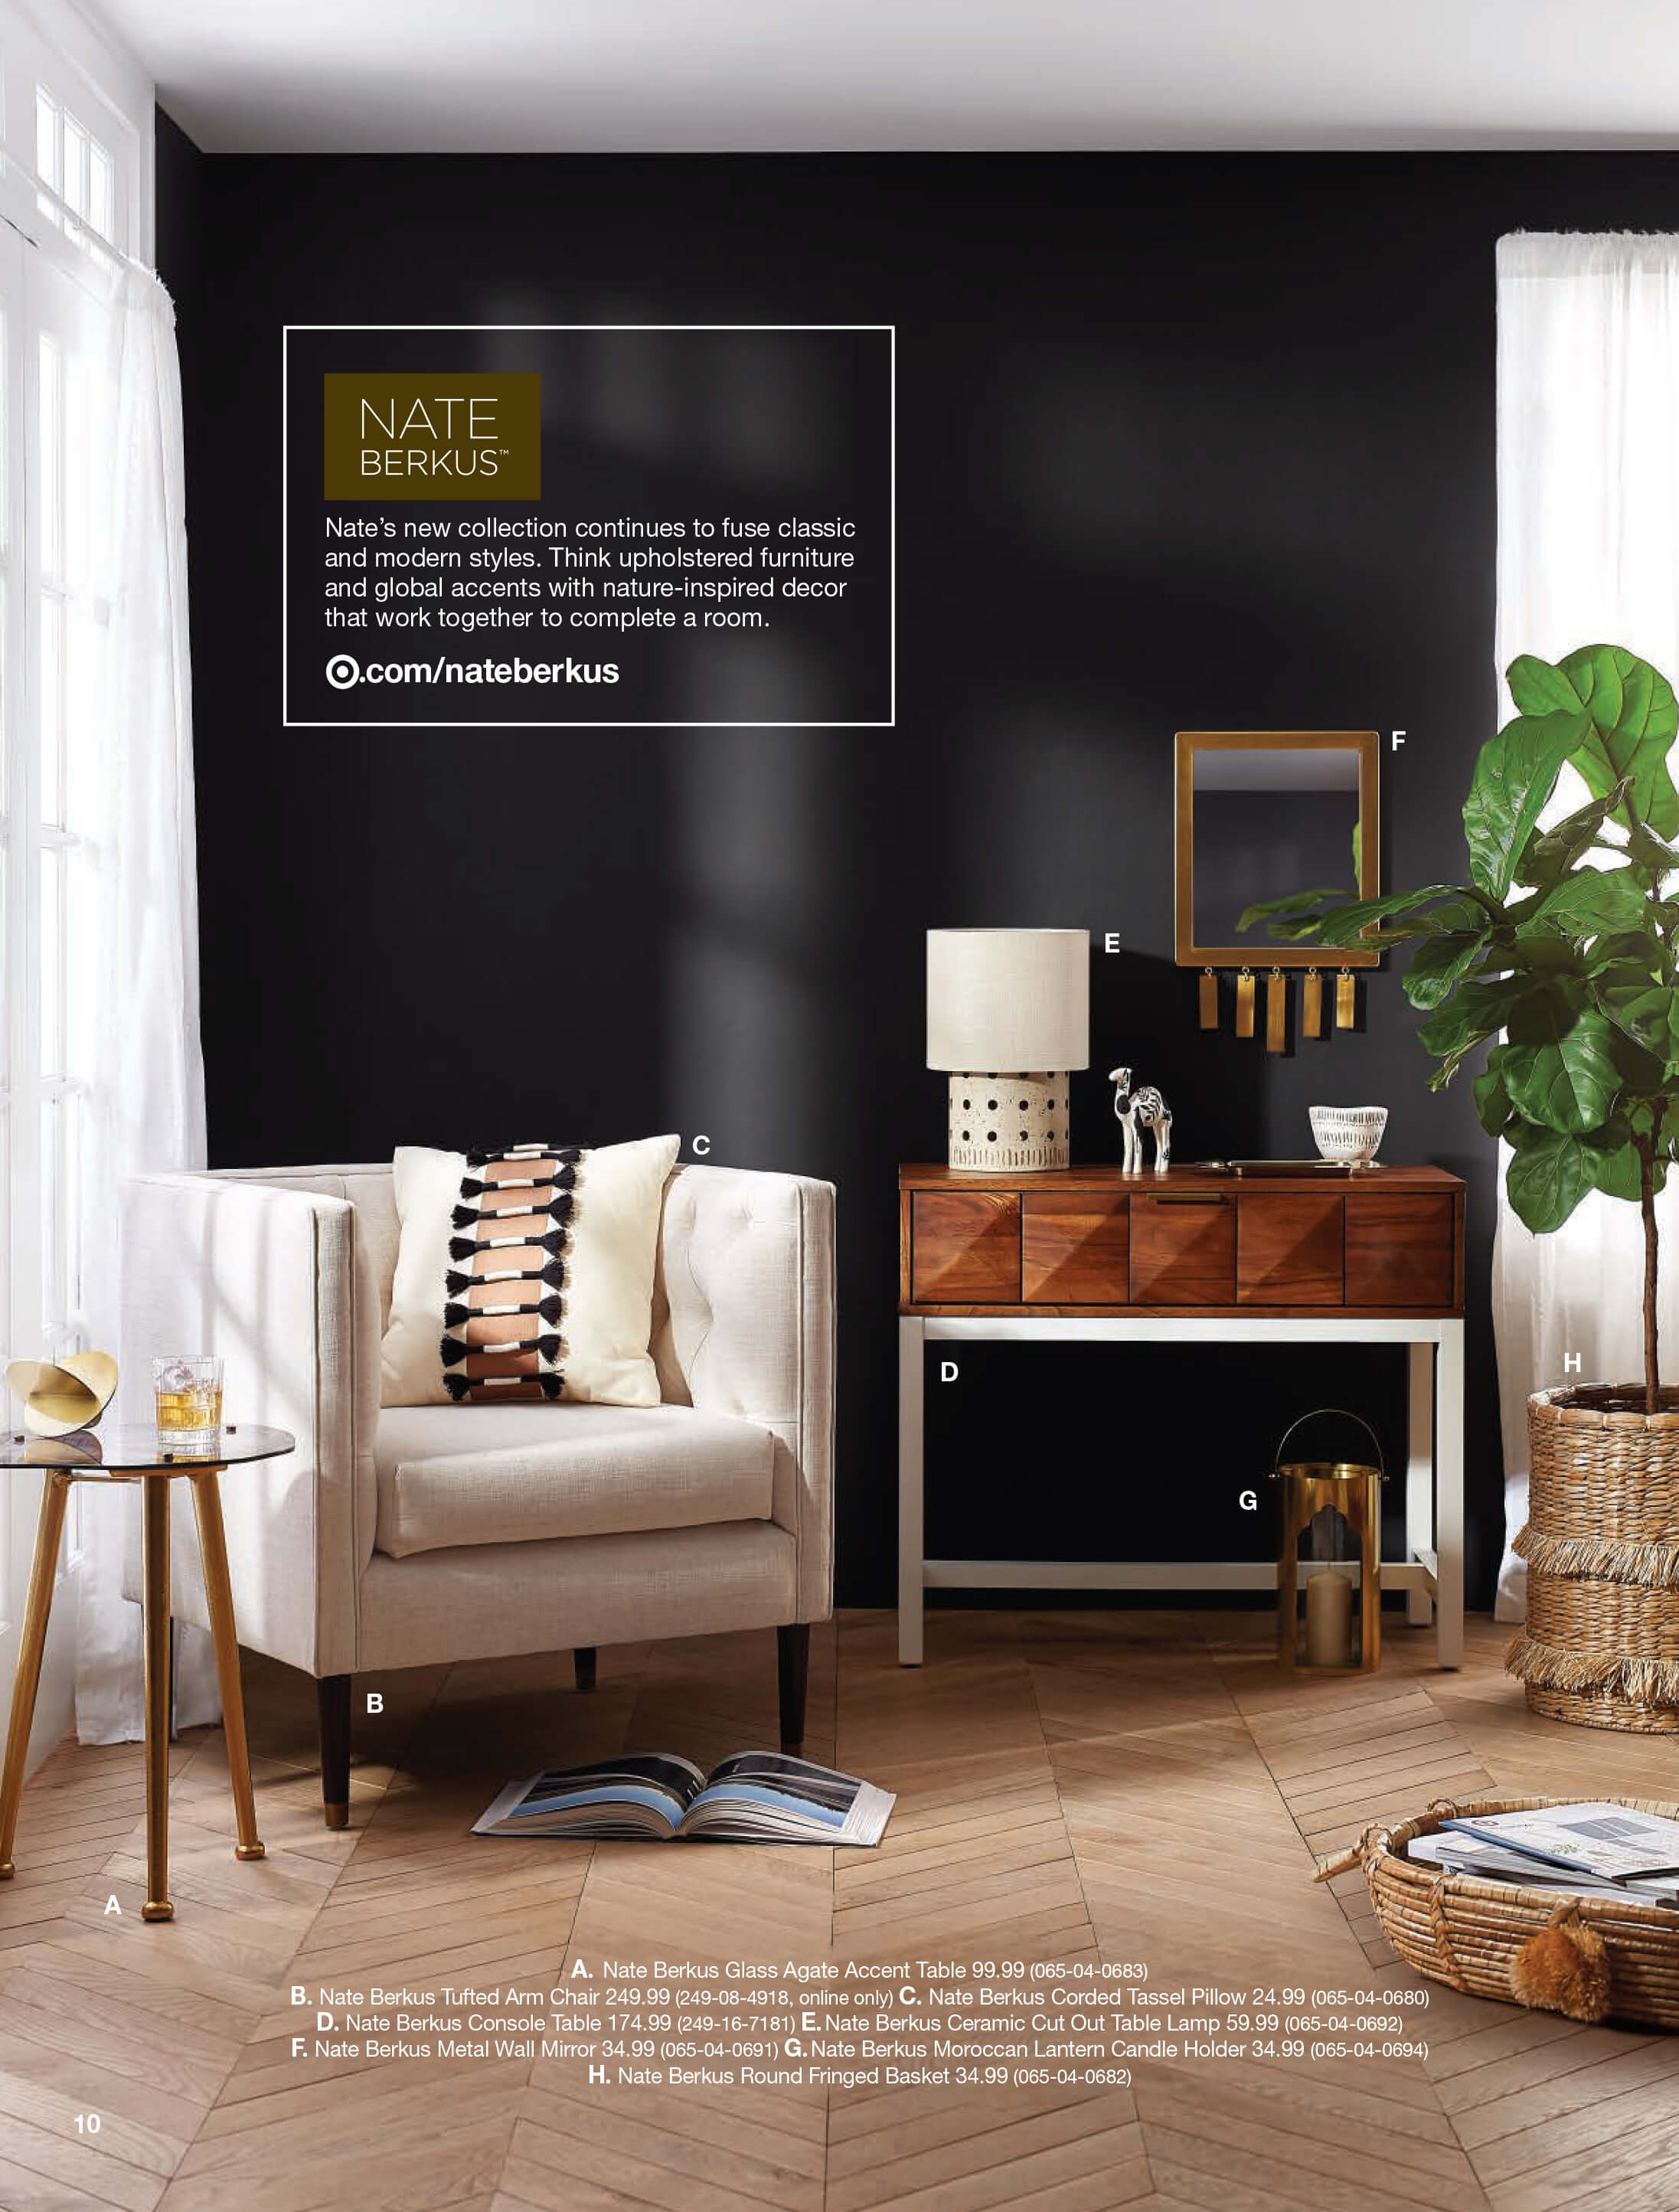 new target home product and emily henderson first look spring catalog nate berkus accent table room essentials trestle popular coffee tables ceramic patio side metal frame legs